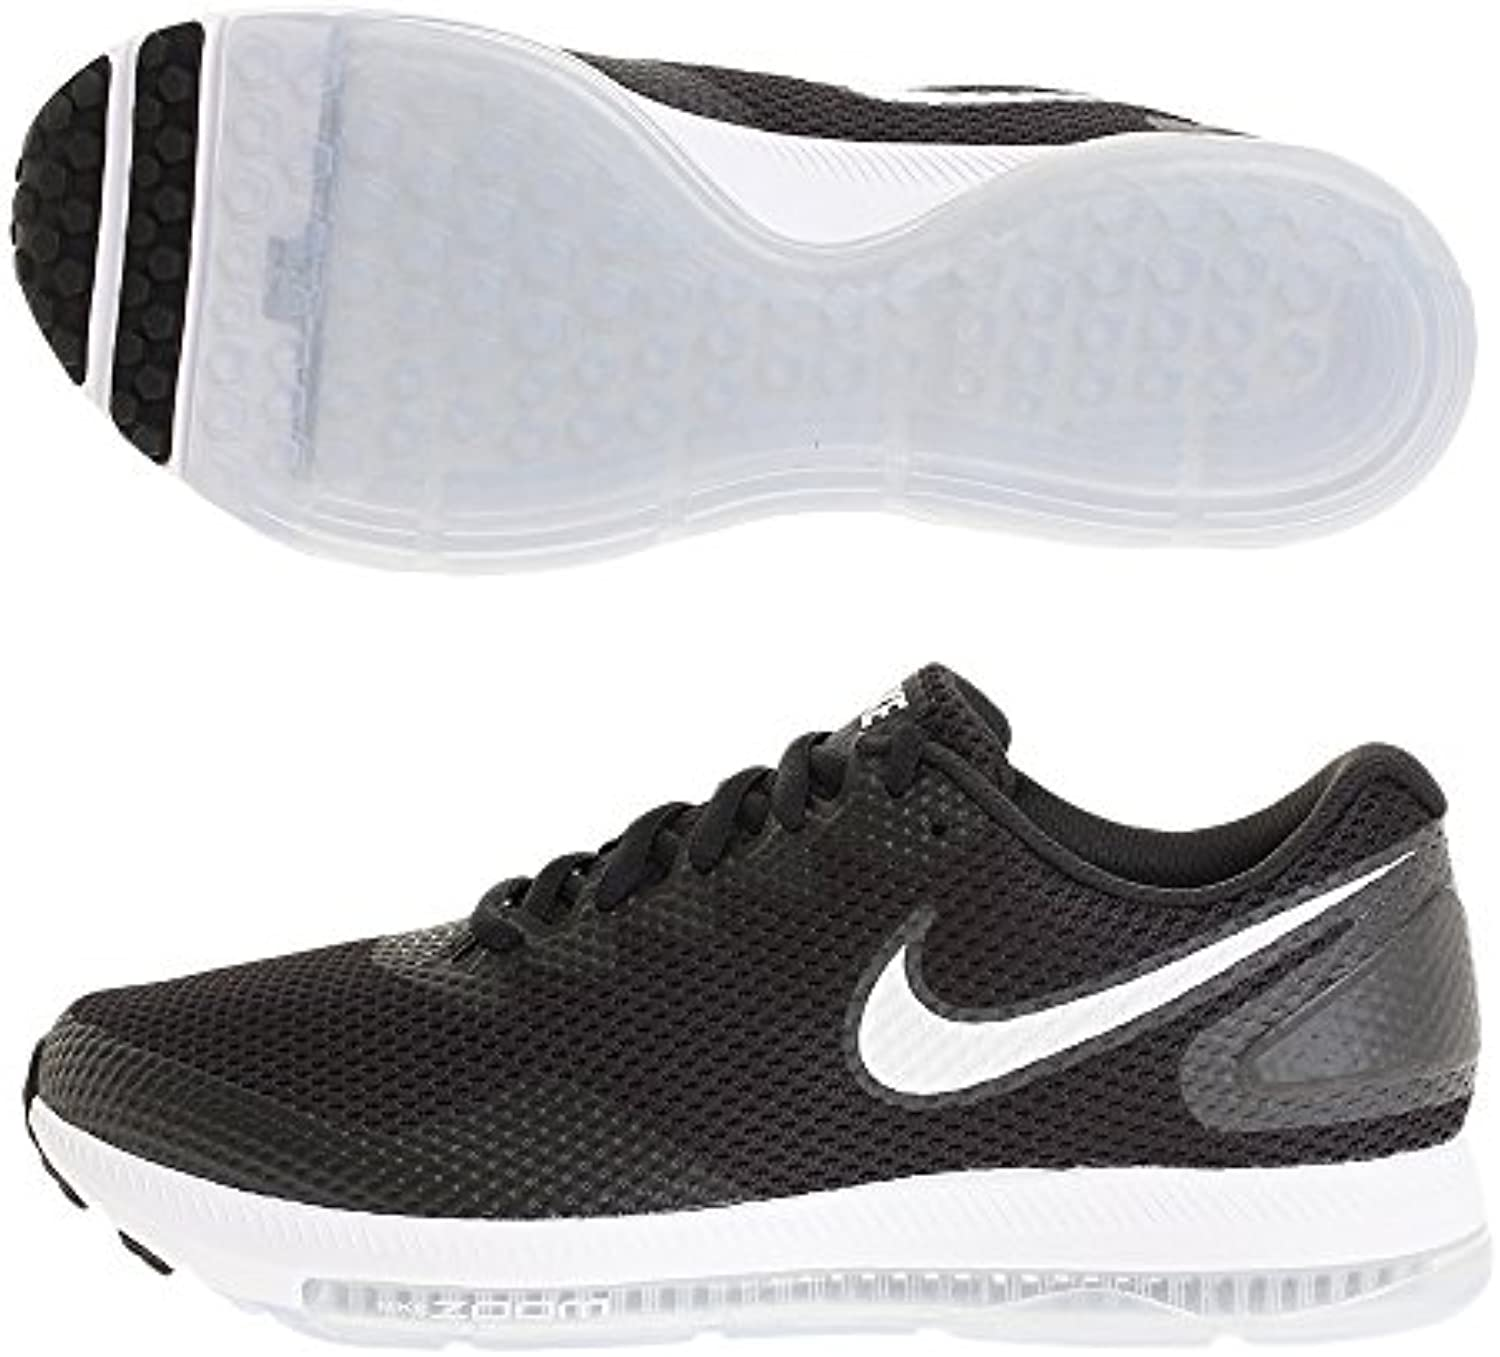 Nike Zoom All Out Low 2, Zapatillas de Trail Running para Hombre, Negro (Black/White/Anthracite 003), 45 EU